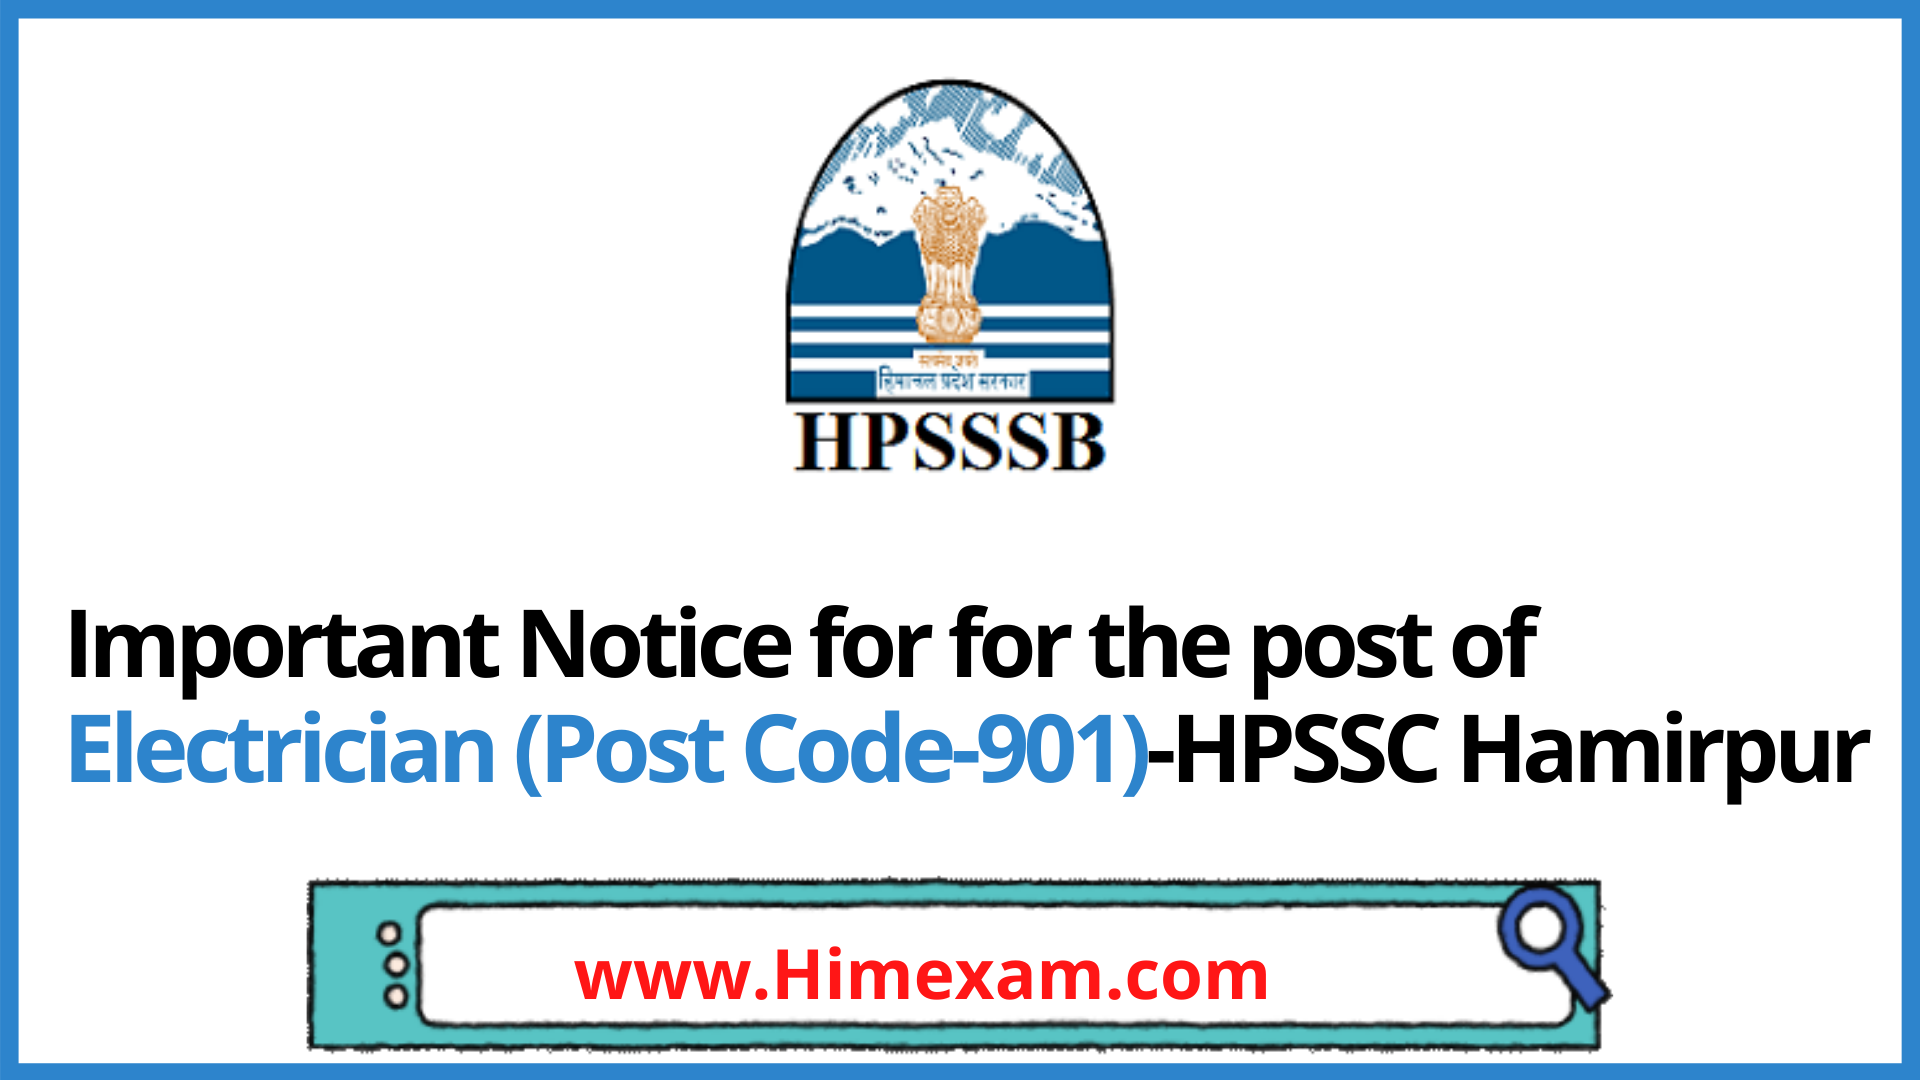 Important Notice for for the post of Electrician (Post Code-901)-HPSSC Hamirpur